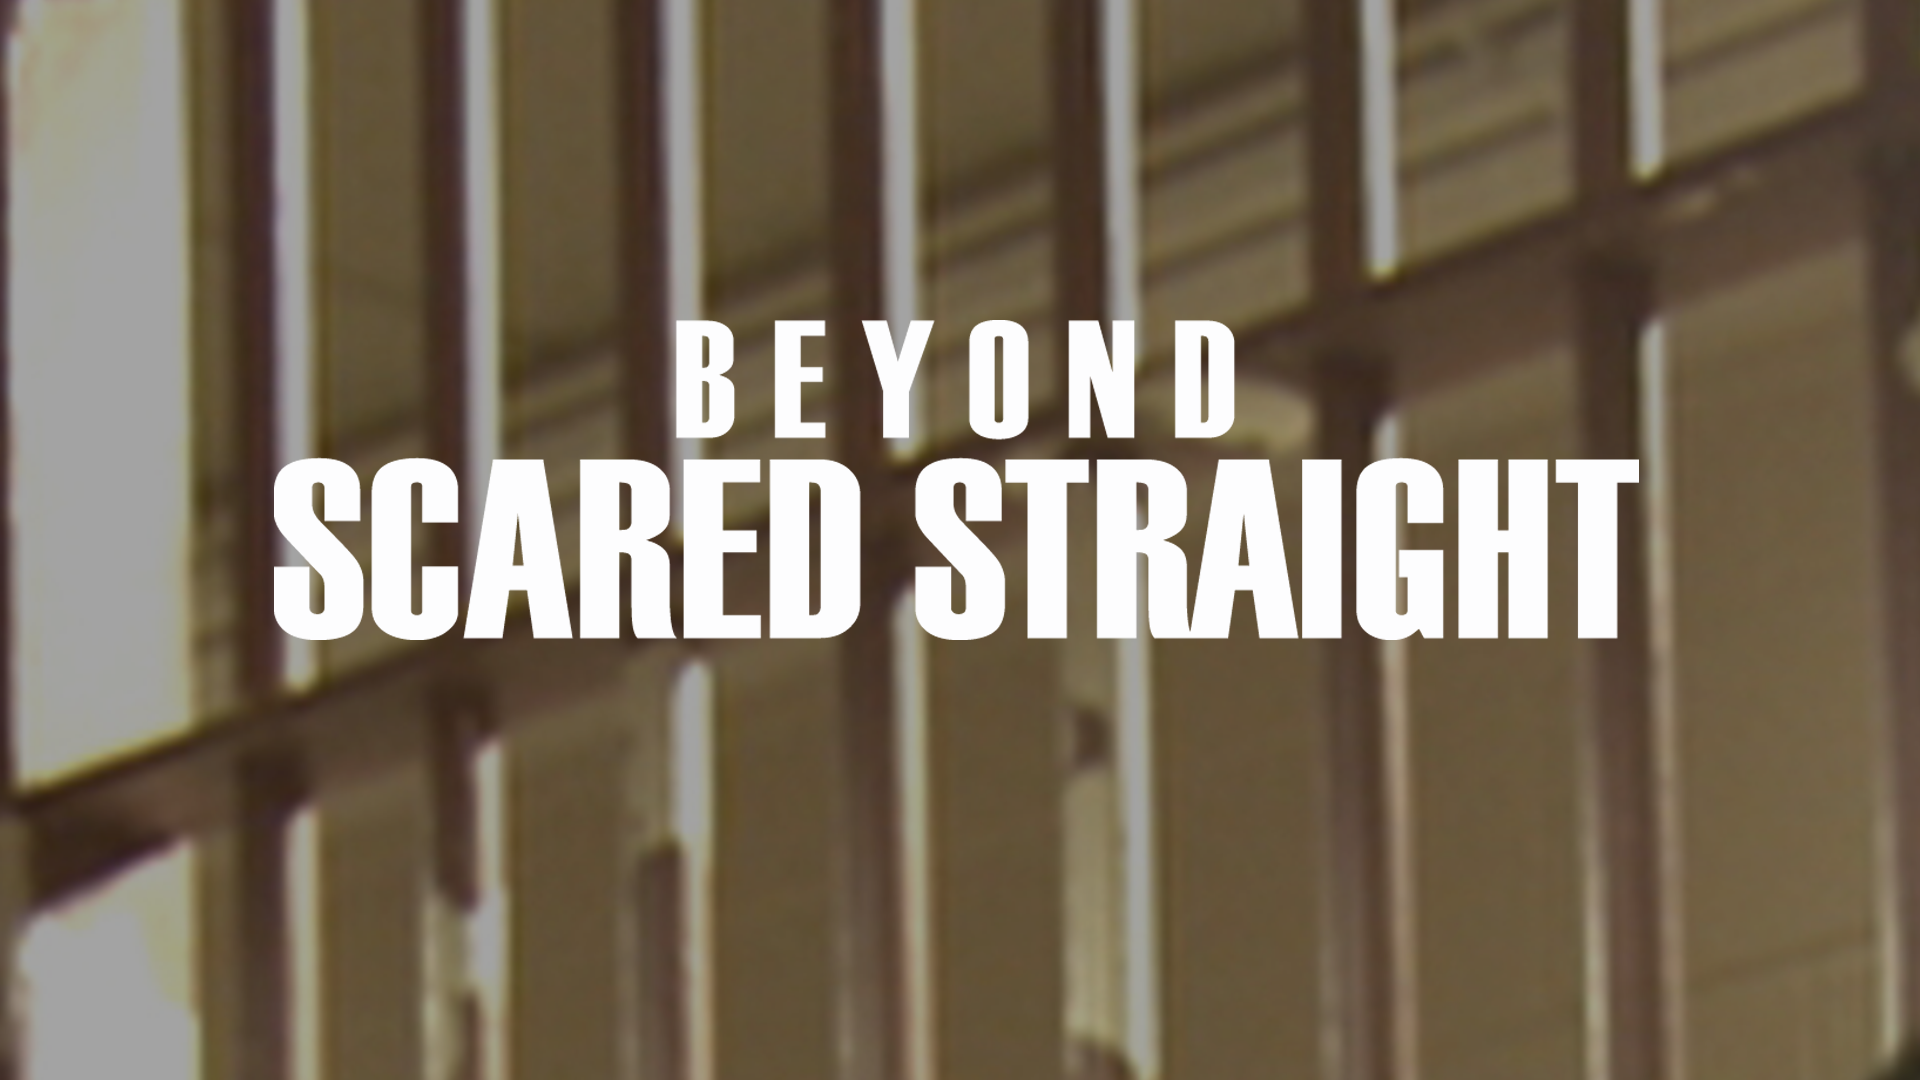 Beyond Scared Straight Full Episodes, Video & More | A&E